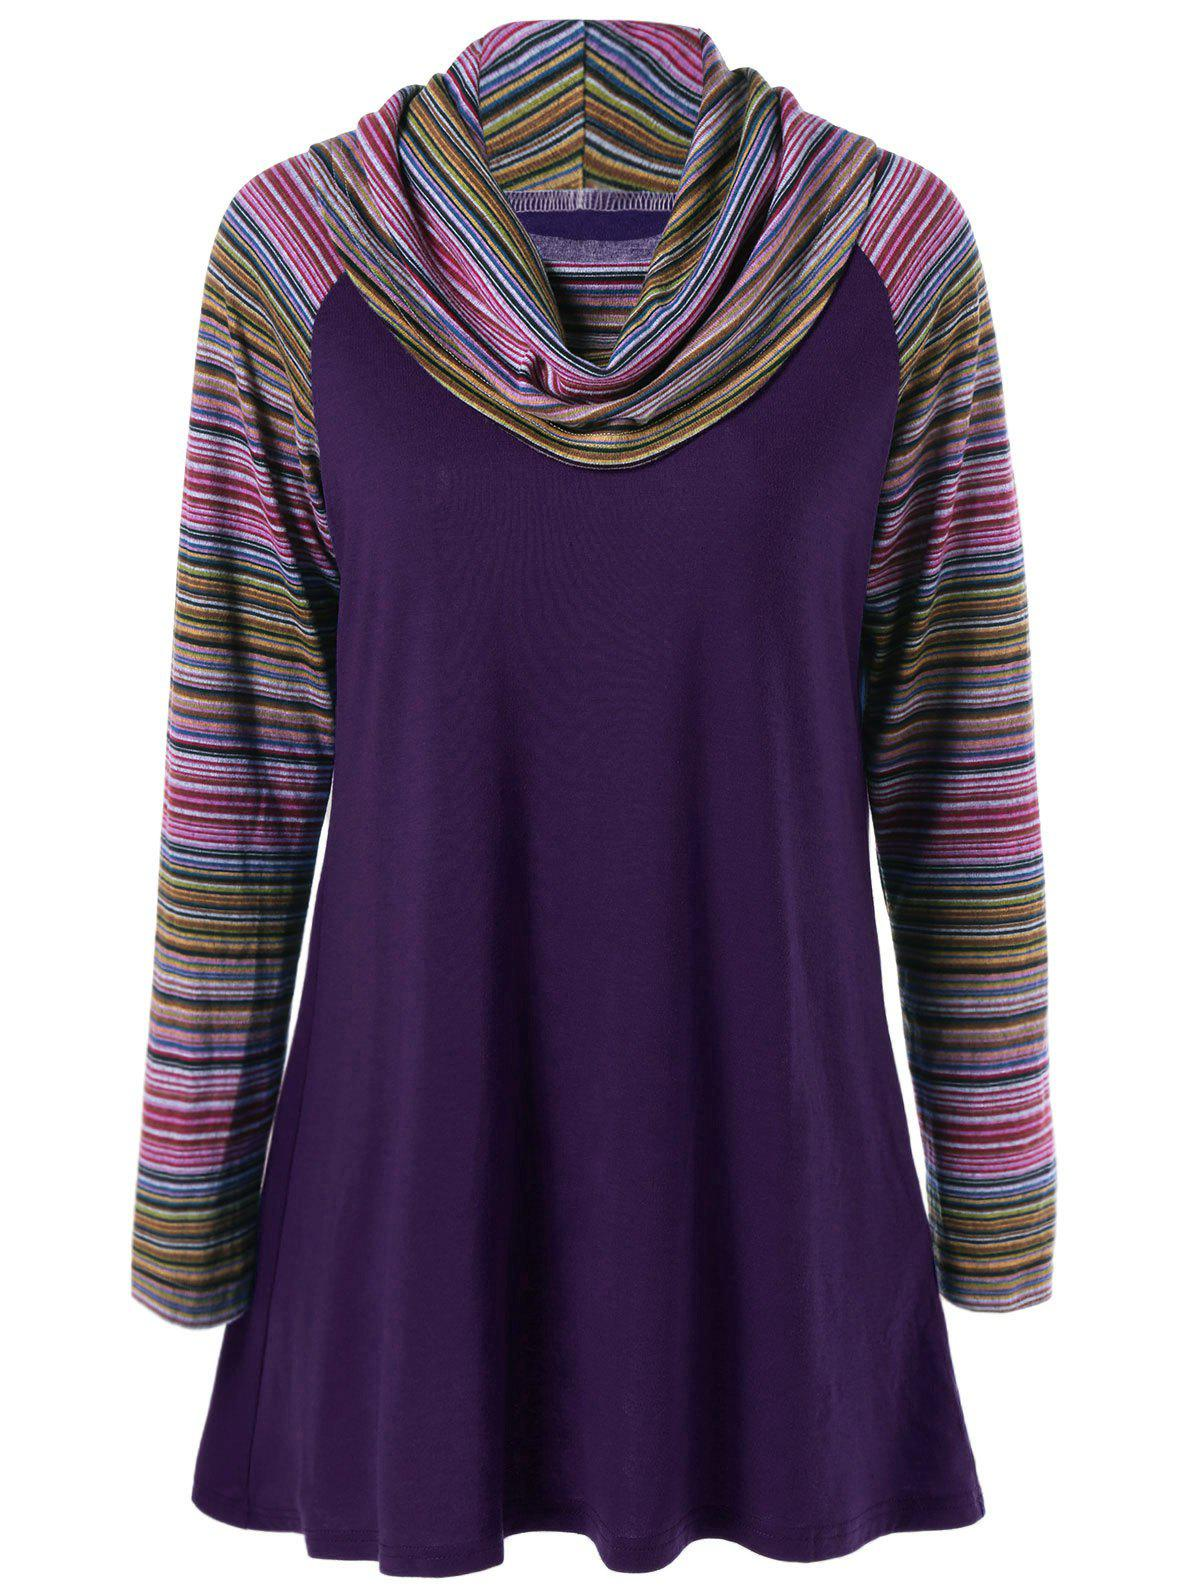 Cowl Neck Colorful Striped T-ShirtWOMEN<br><br>Size: XL; Color: PURPLE; Material: Polyester; Sleeve Length: Full; Collar: Cowl Neck; Style: Streetwear; Pattern Type: Striped; Season: Fall,Spring,Winter; Weight: 0.370kg; Package Contents: 1 x T-Shirt;